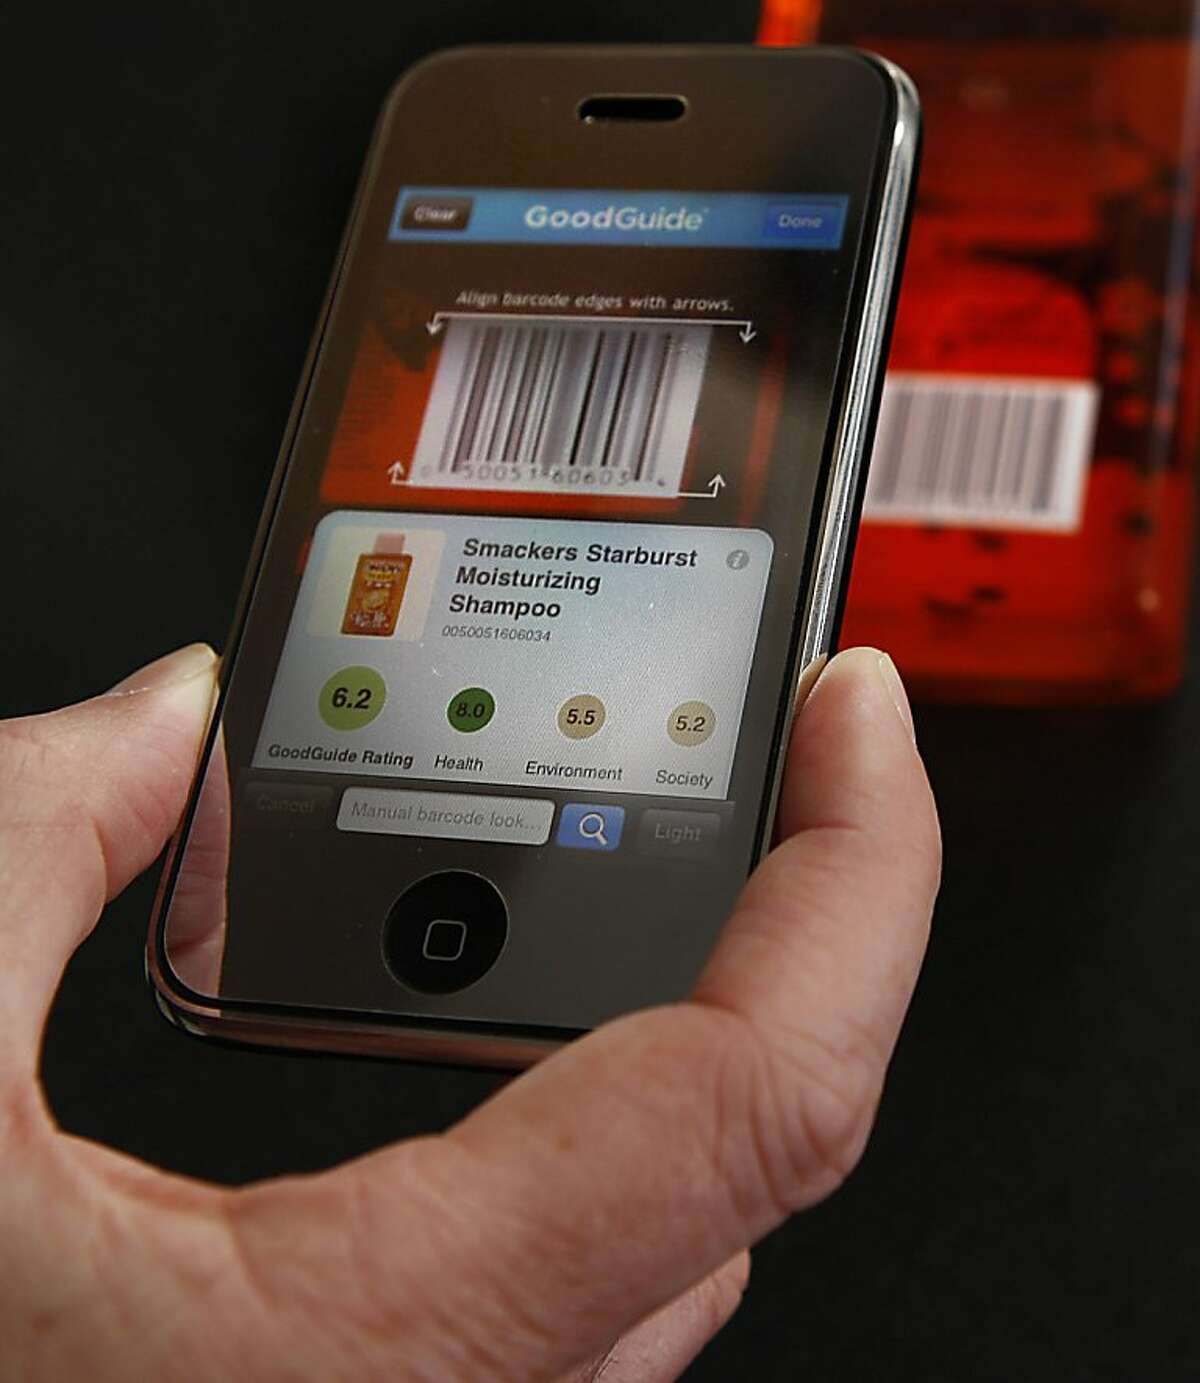 Founder Dara O'Rourke of GoodGuide, a resource for consumers looking to buy safe, environmentally good products showing how to scan a barcode at his office in San Francisco, Calif., on Tuesday, May 10, 2011. GoodGuide's iPhone app scans barcodes and looks up the product in its database.